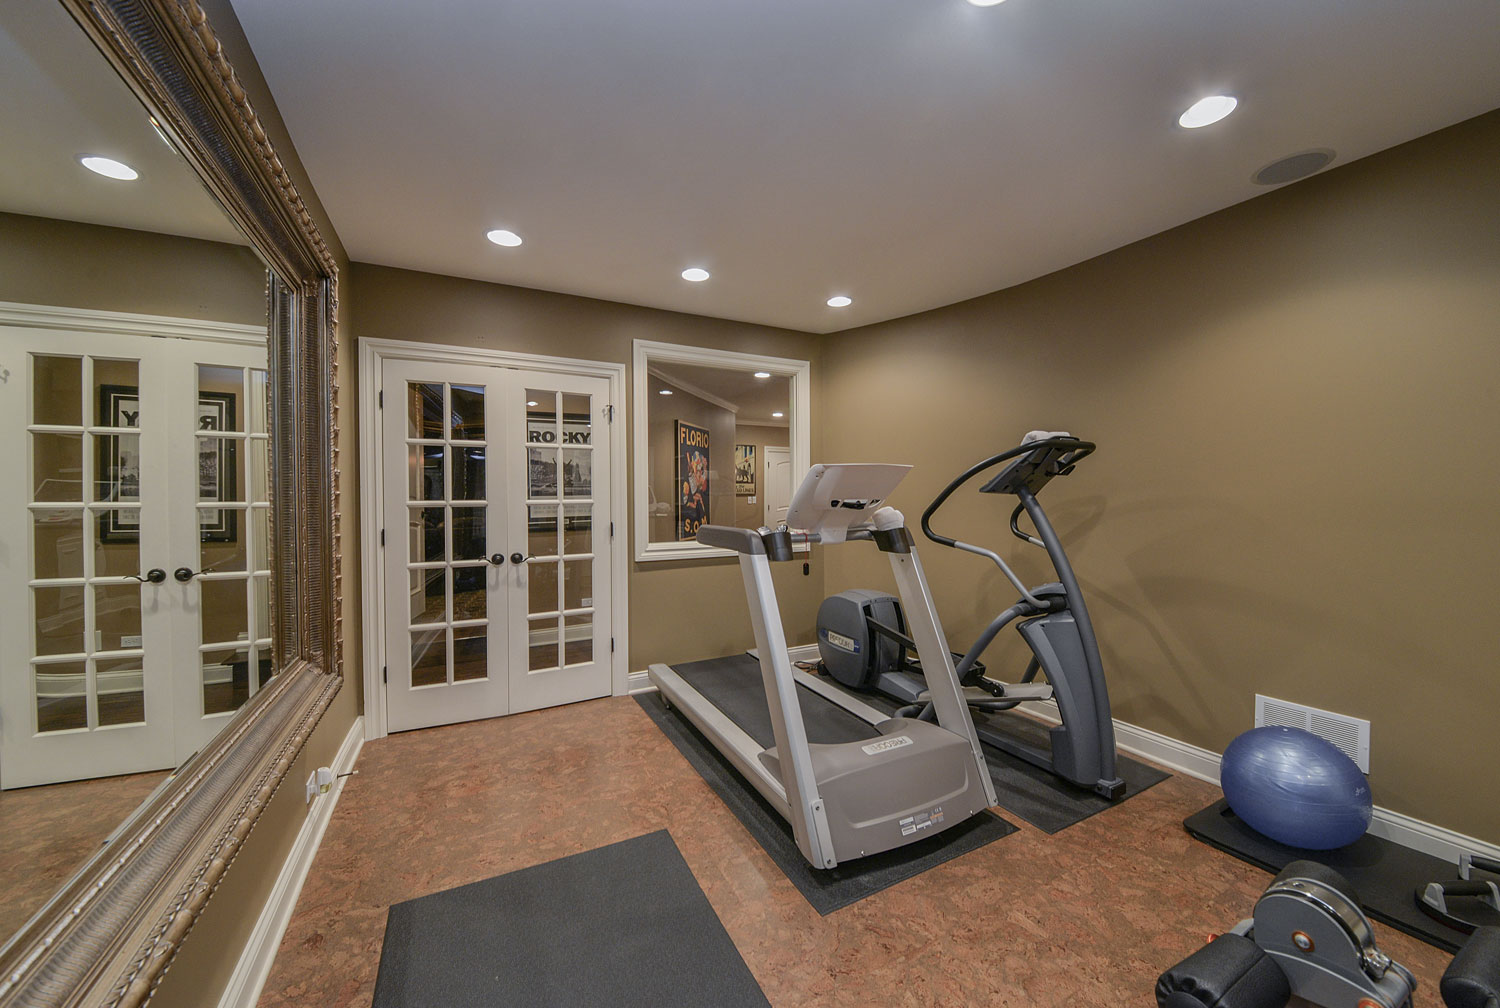 Home Gym Design: Jim & Gina's Basement Remodel Pictures